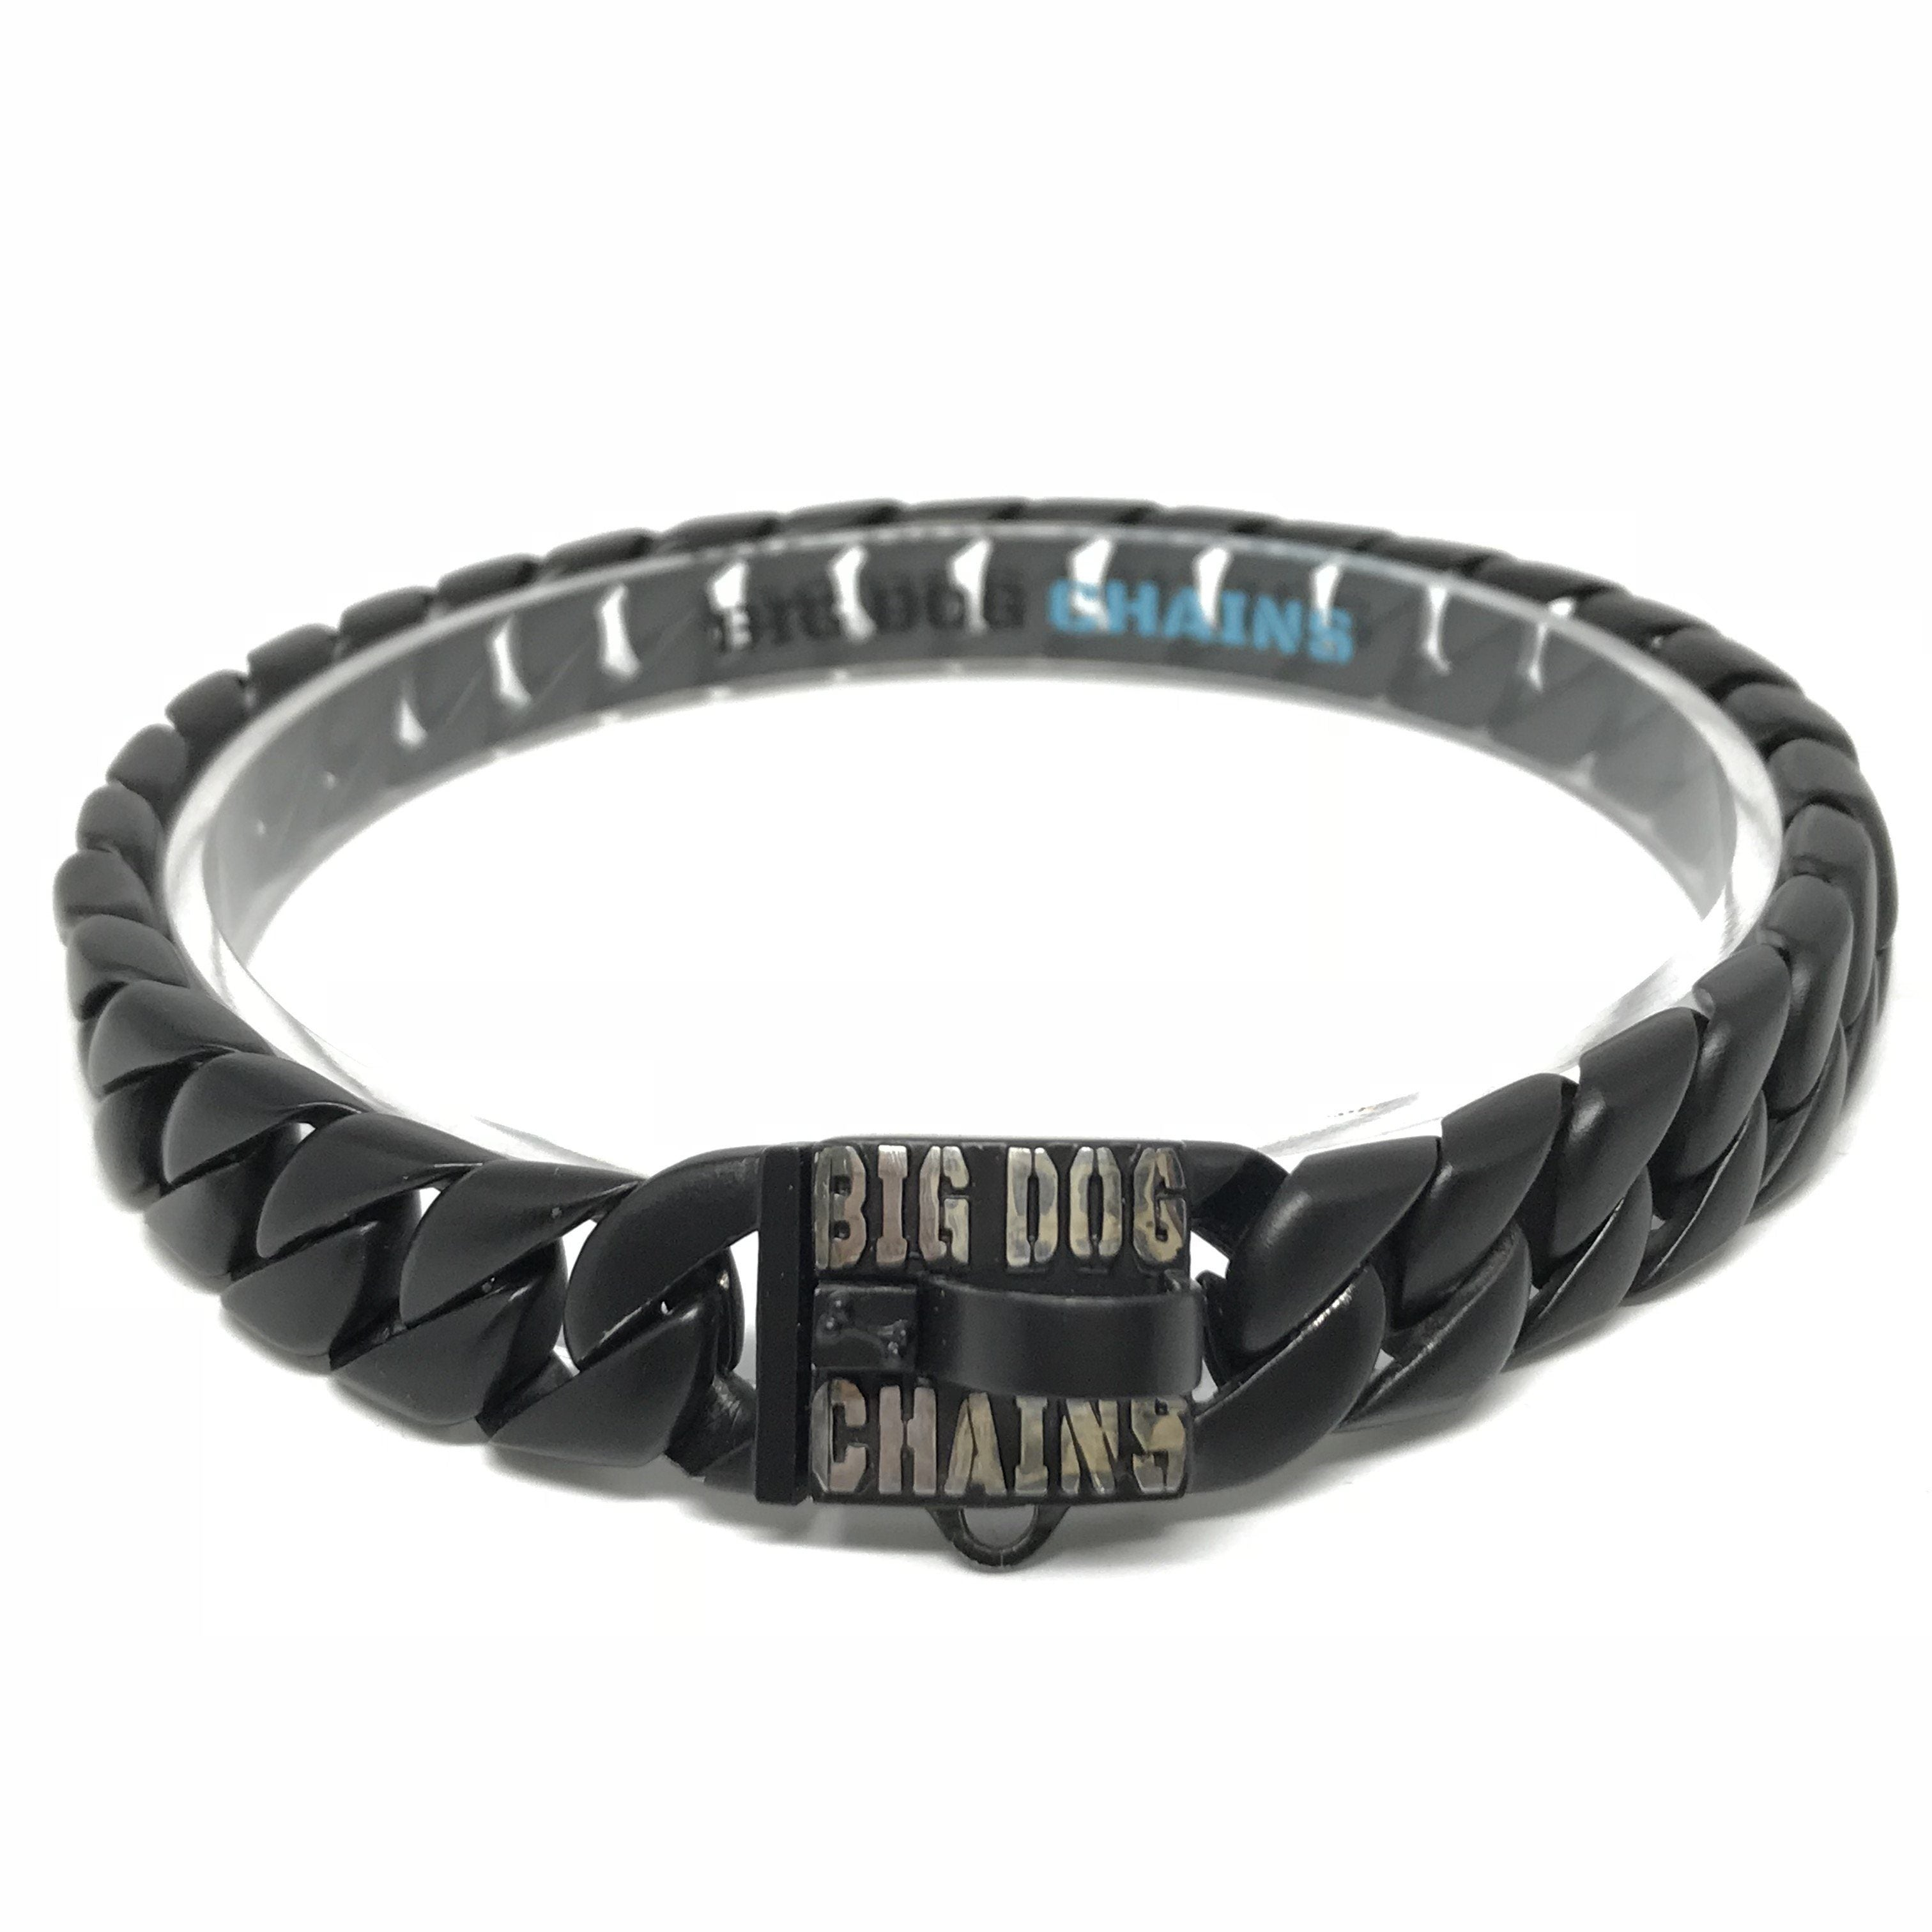 The Miami Groove | Lil' Dog Chains